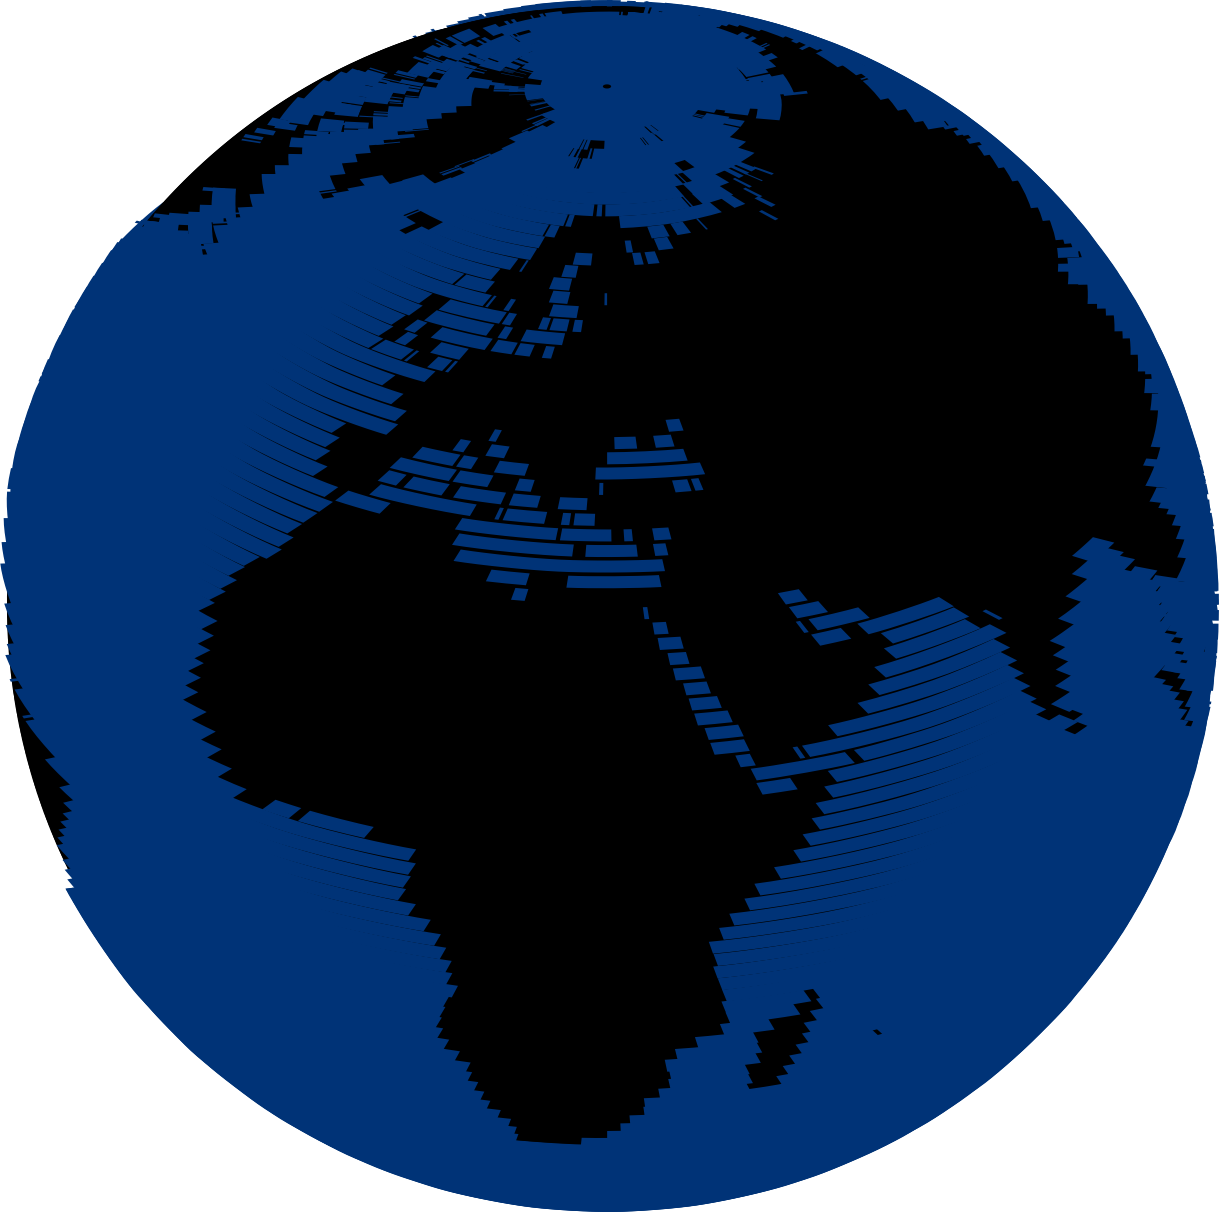 Clipart earth animated. Big image png